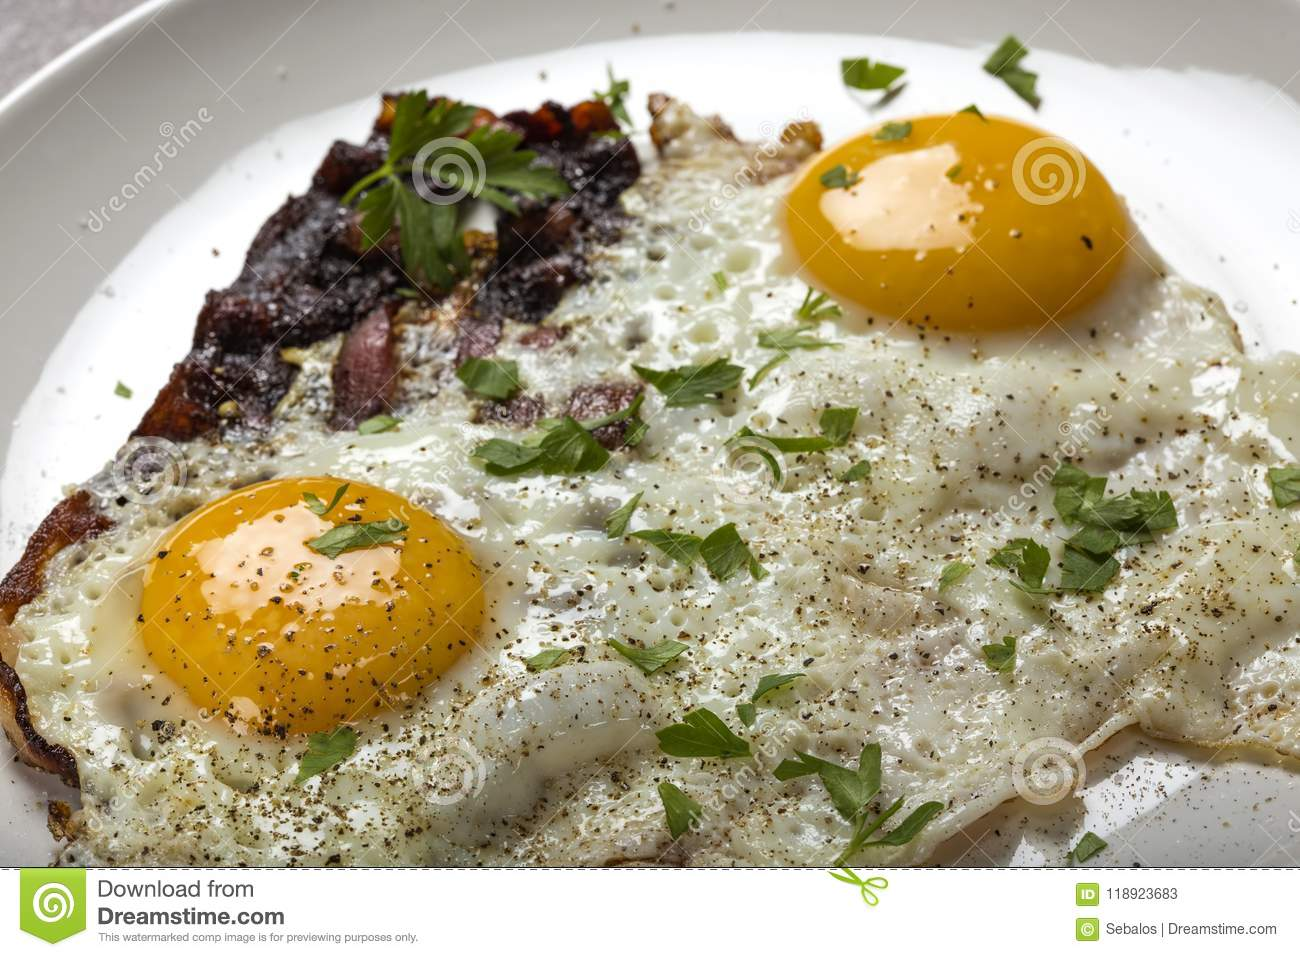 Bacon and eggs with ground pepper and parsley leaves